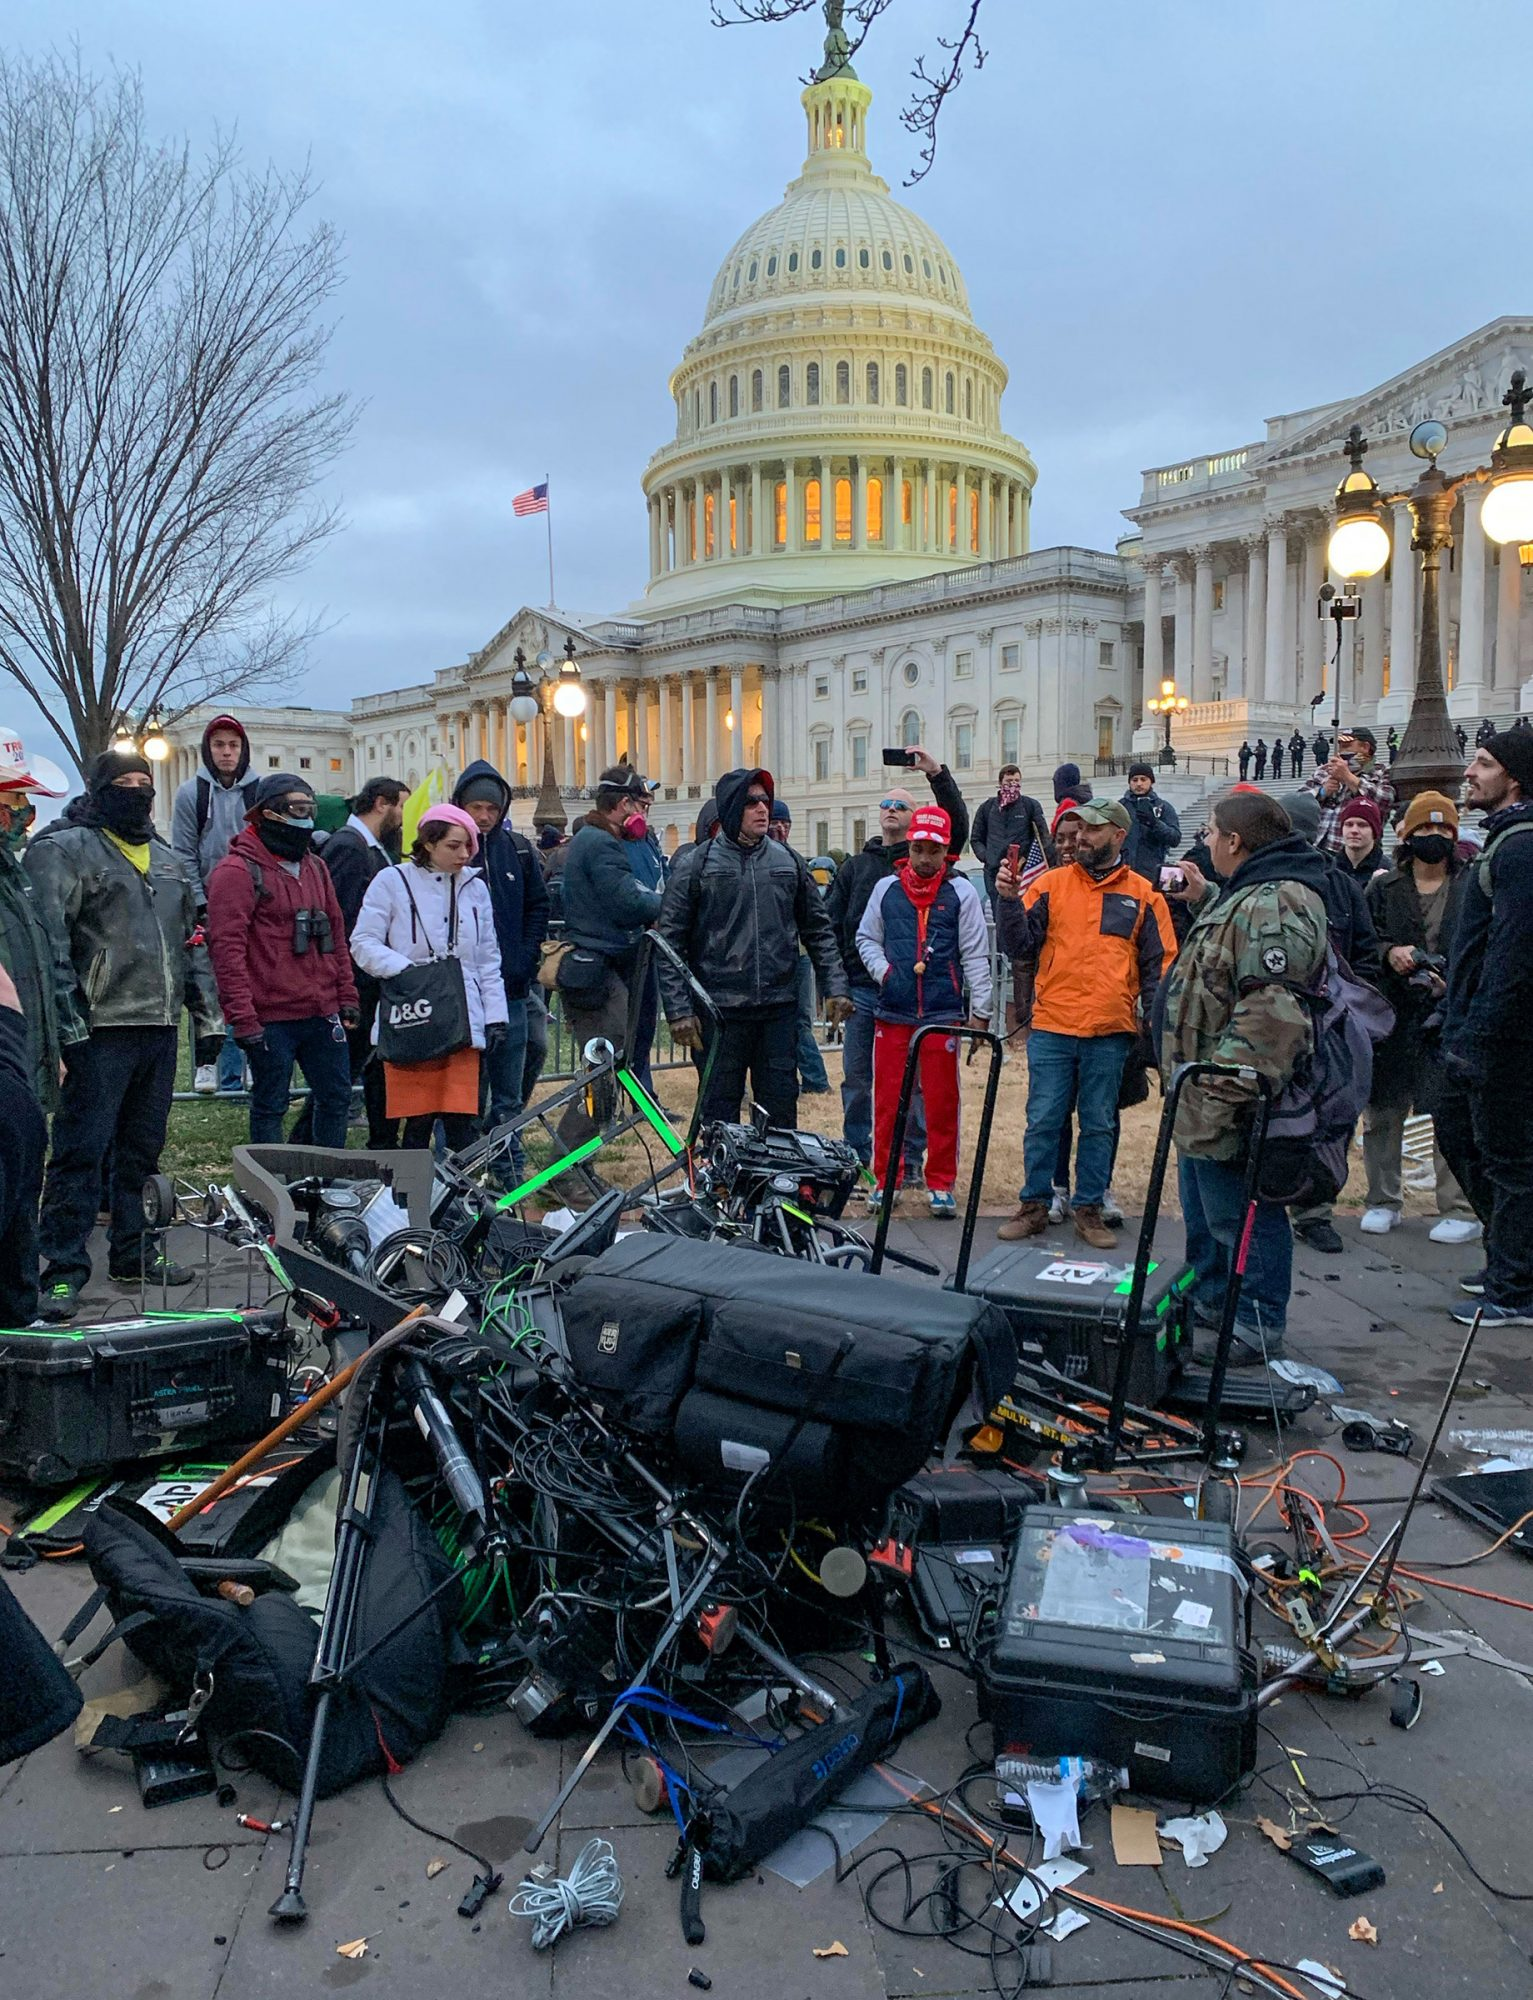 People stand around media equipment destroyed by Trump supporters outside the US Capitol in Washington DC